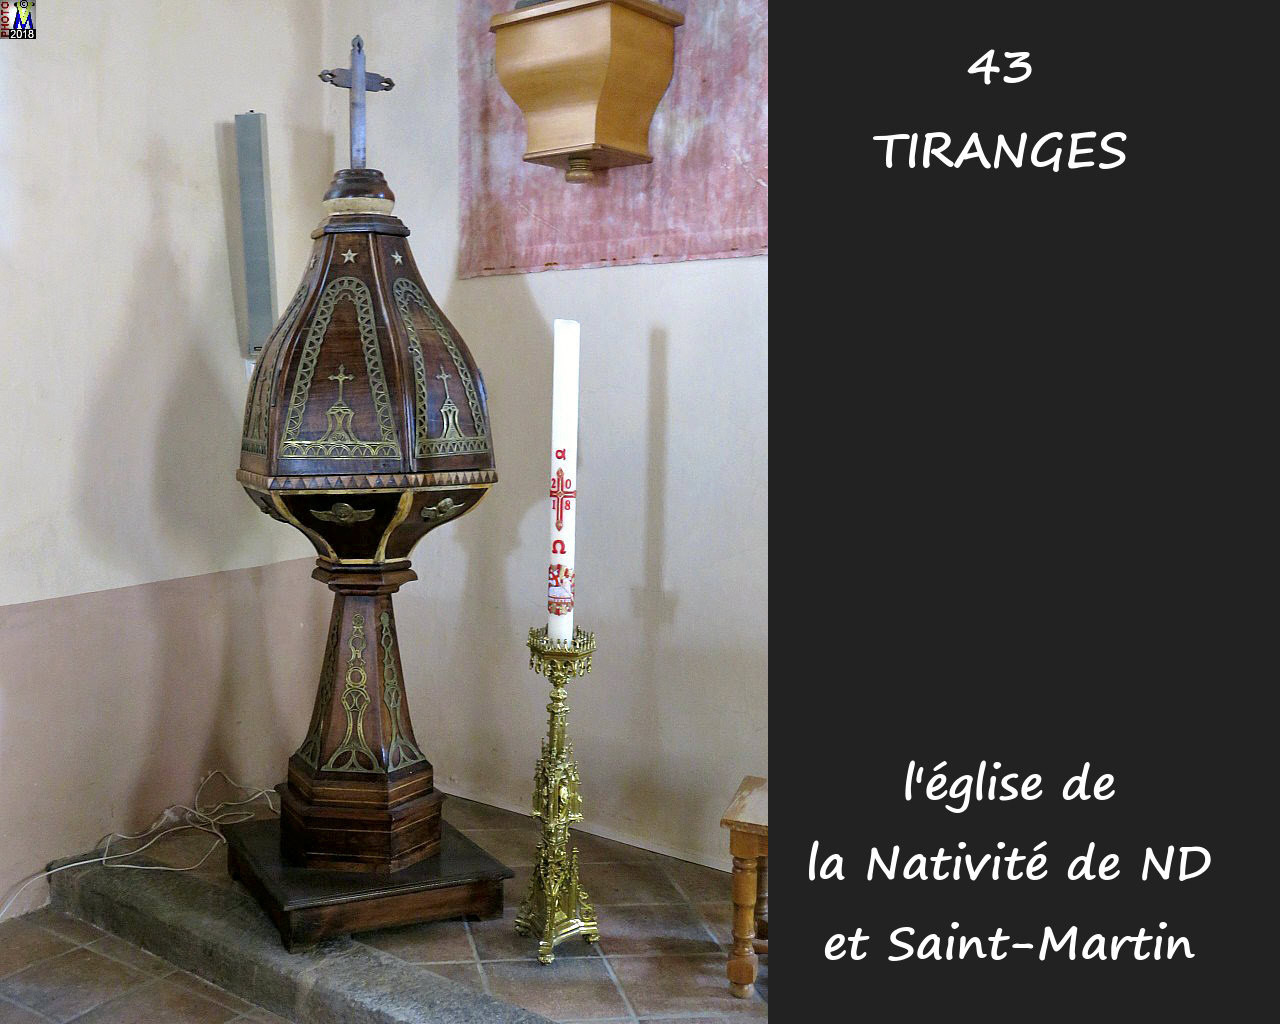 43TIRANGES_eglise_240.jpg